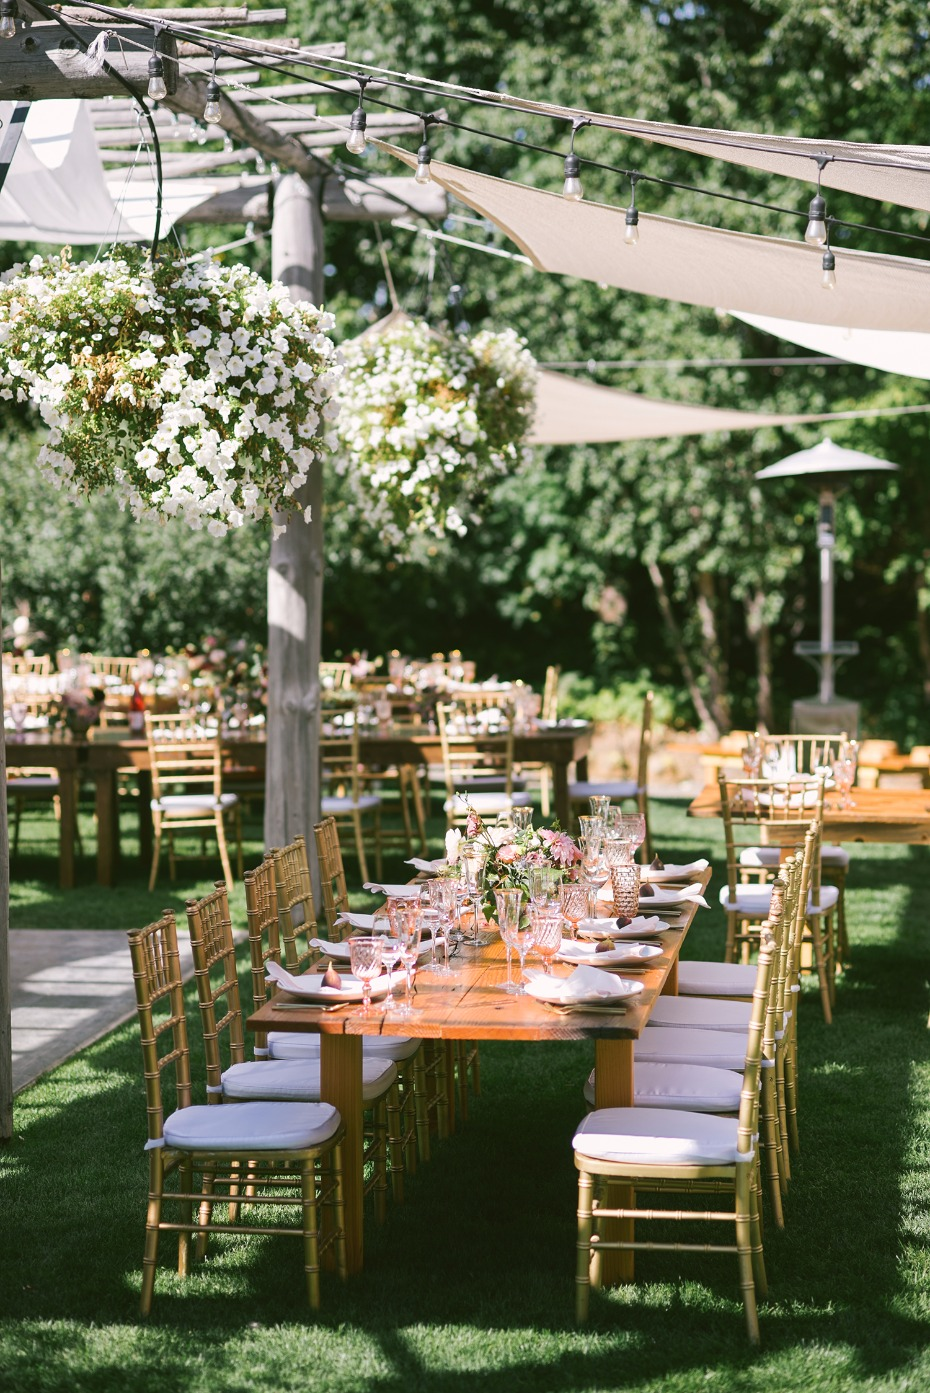 Dreamy outdoor reception